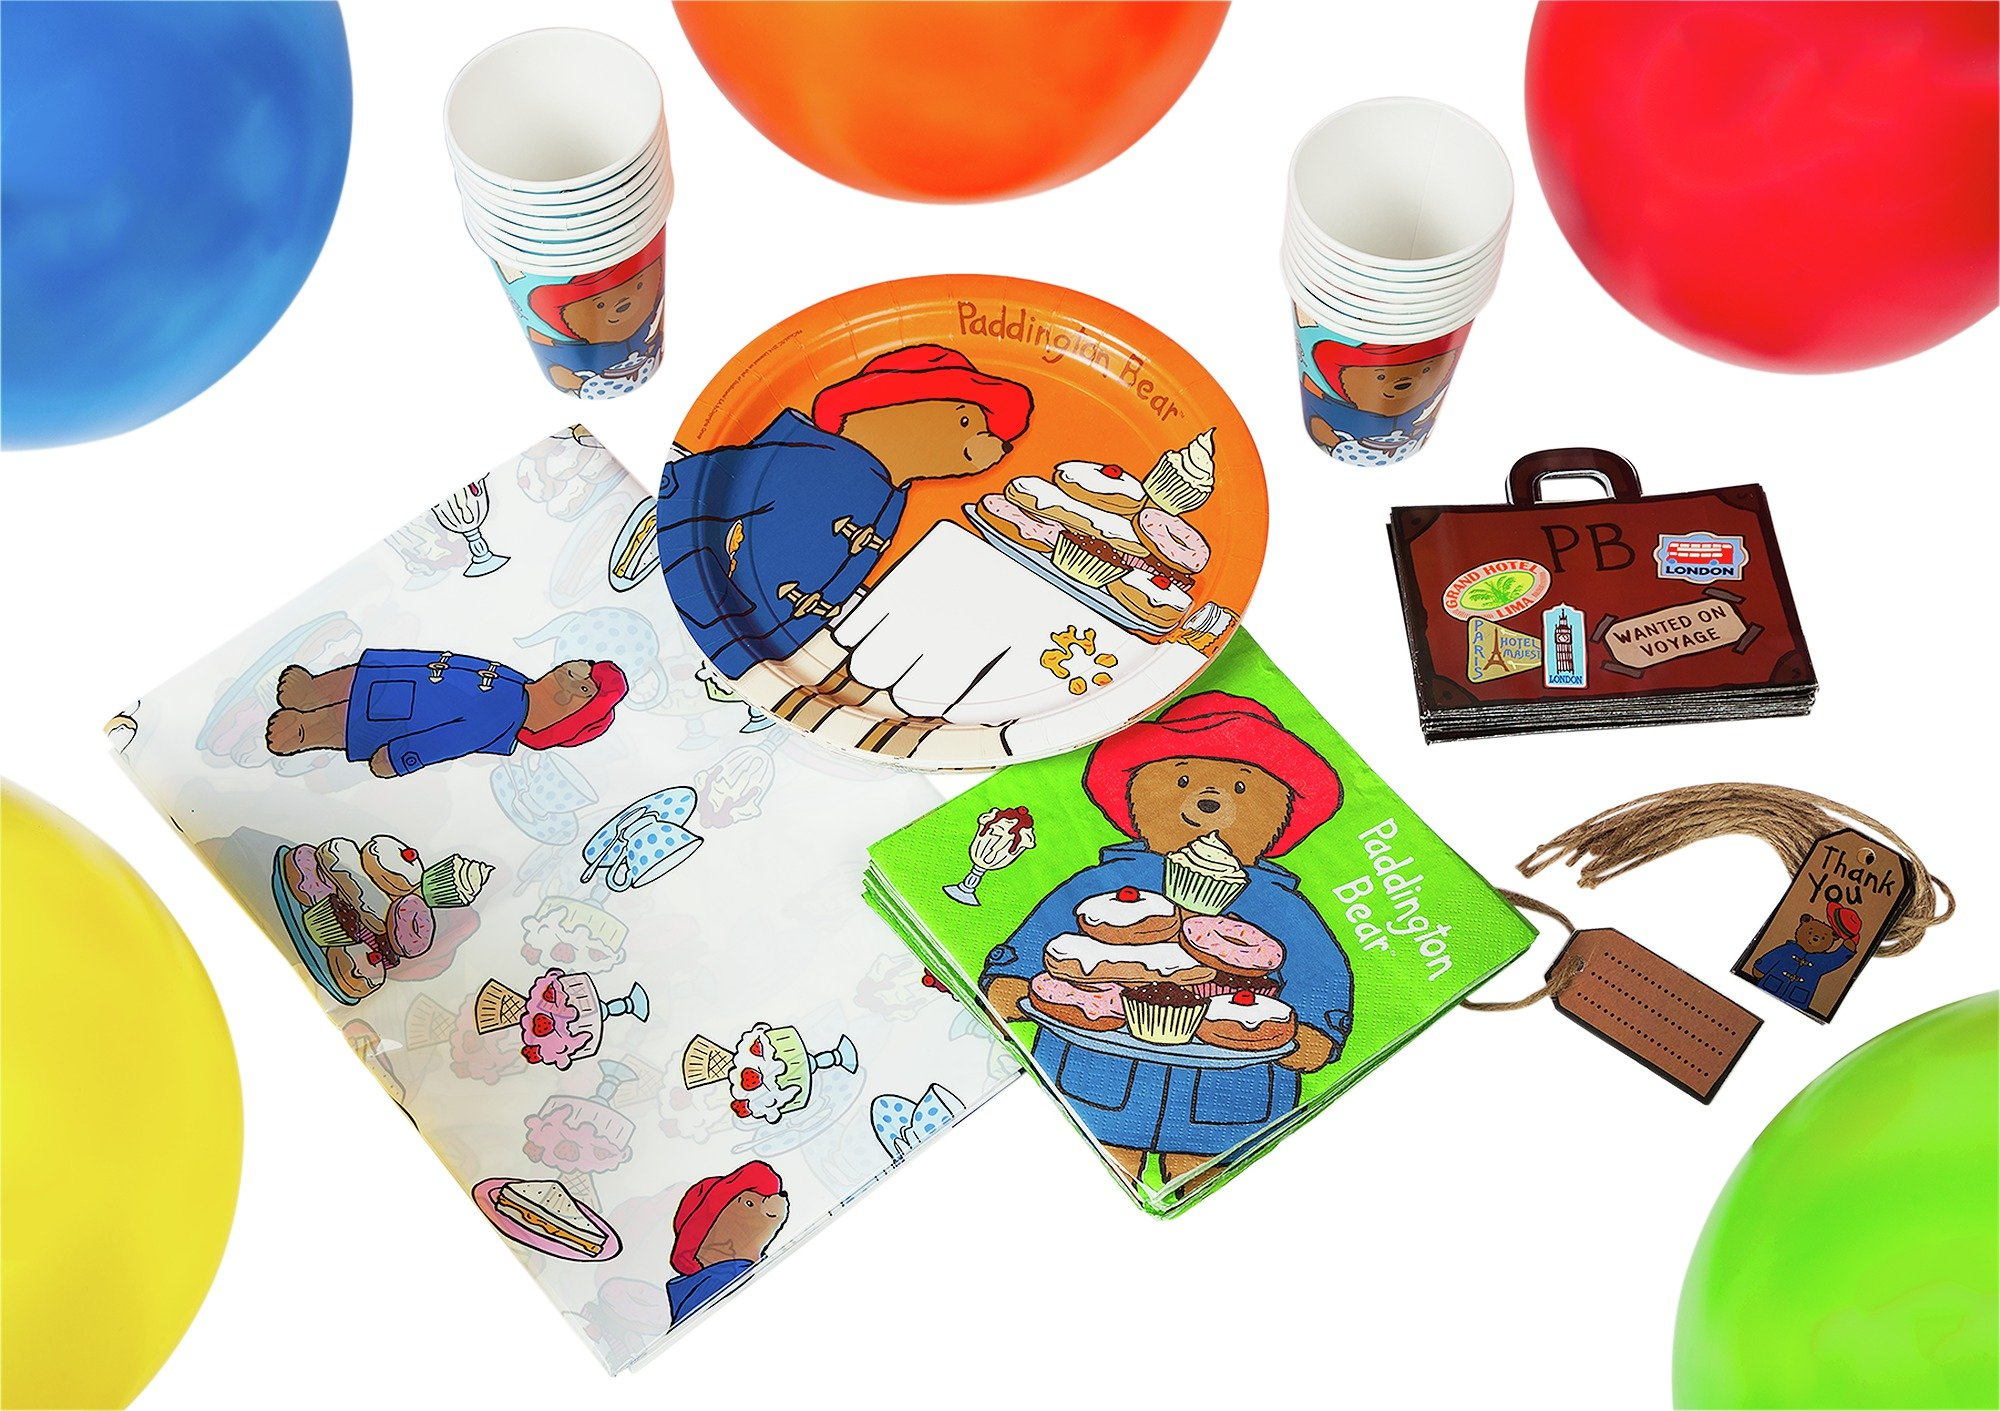 paddington-bear-party-pack-for-16-guests